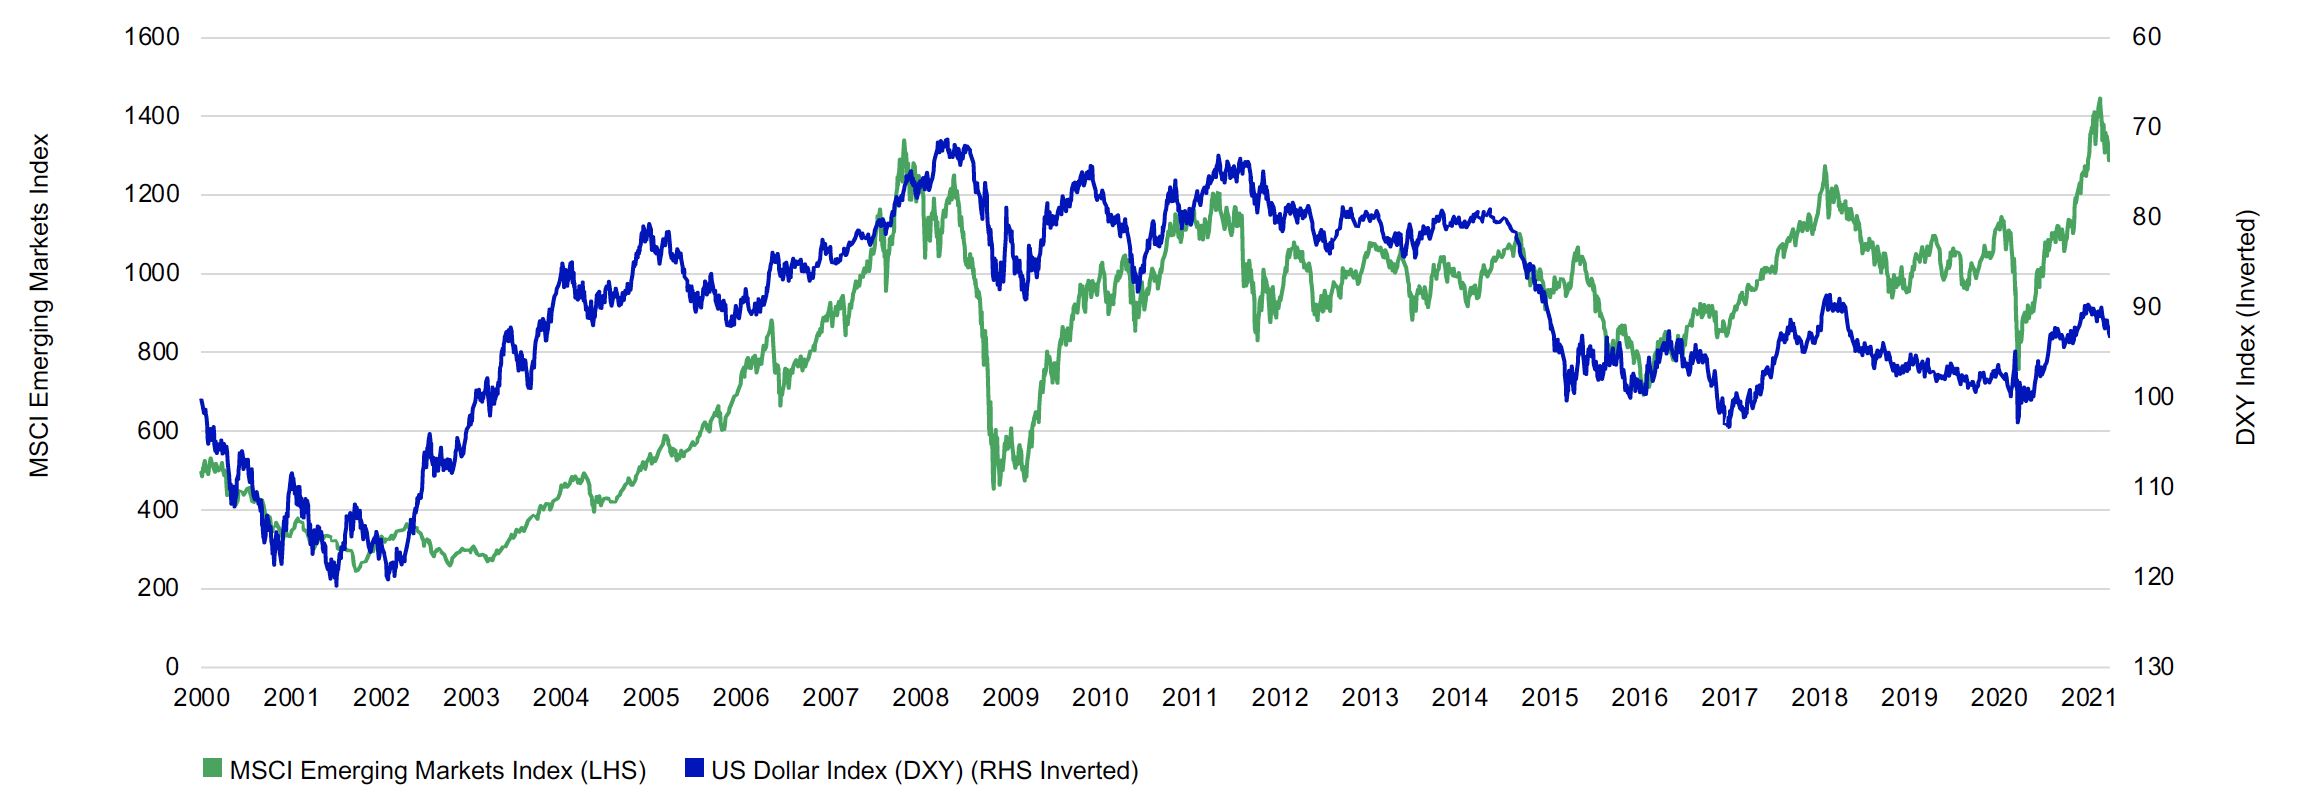 This double line chart shows the MSCI Emerging markets Index level compared to the US Dollar DXY Index from January 200 to March 31, 2021. The US Dollar Index on the right is inverted. The two data sets are negatively correlated. Thes two lines follow each other directionally up and down. Even though the USD index has risen recently so the line is down, we expect that to reverse course and be positive for emerging markets.